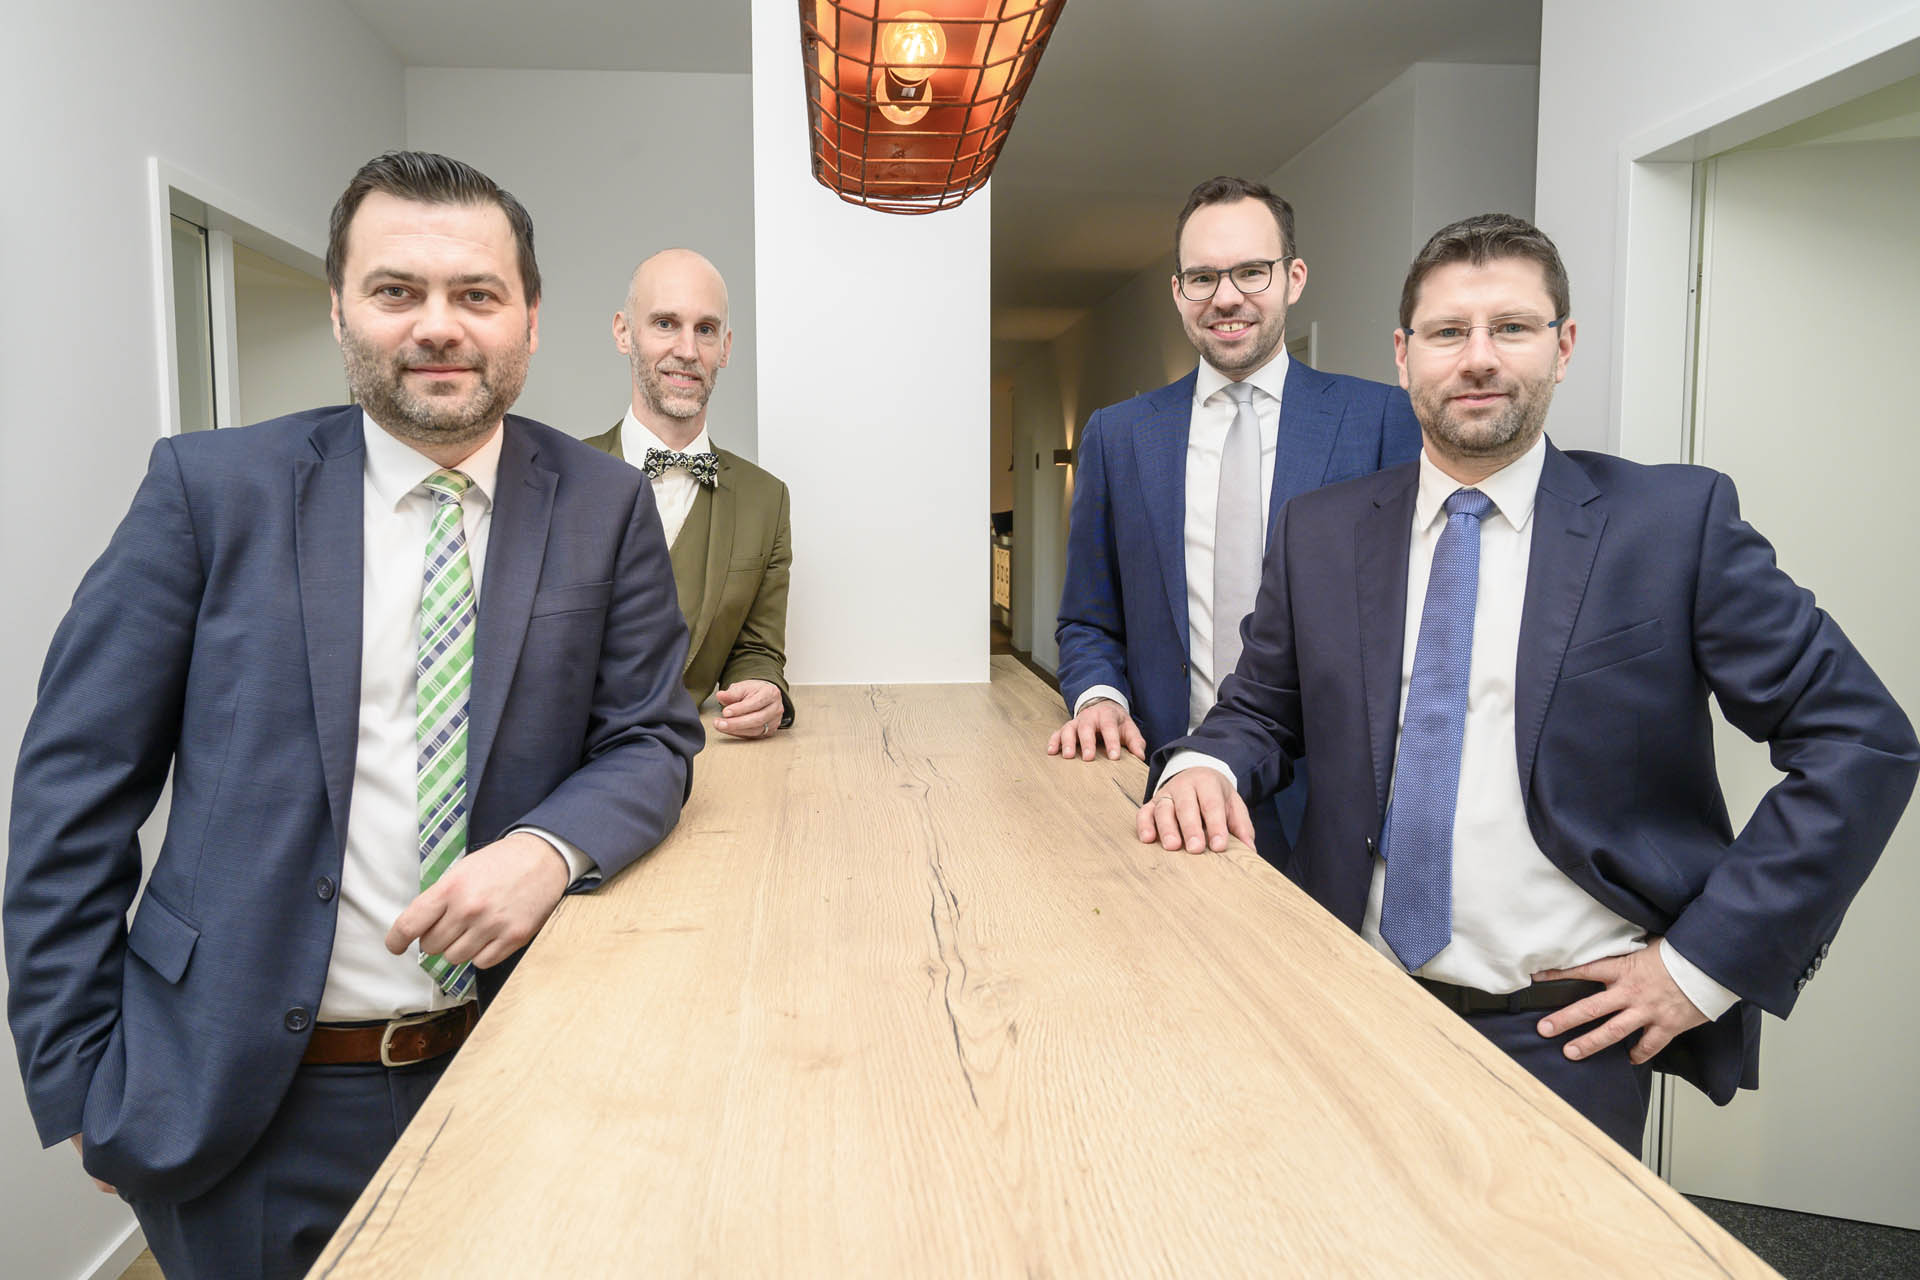 BZG Partner Guido Bleckmann, Guido Zinth, Michale Glombitza, Philipp Sauset